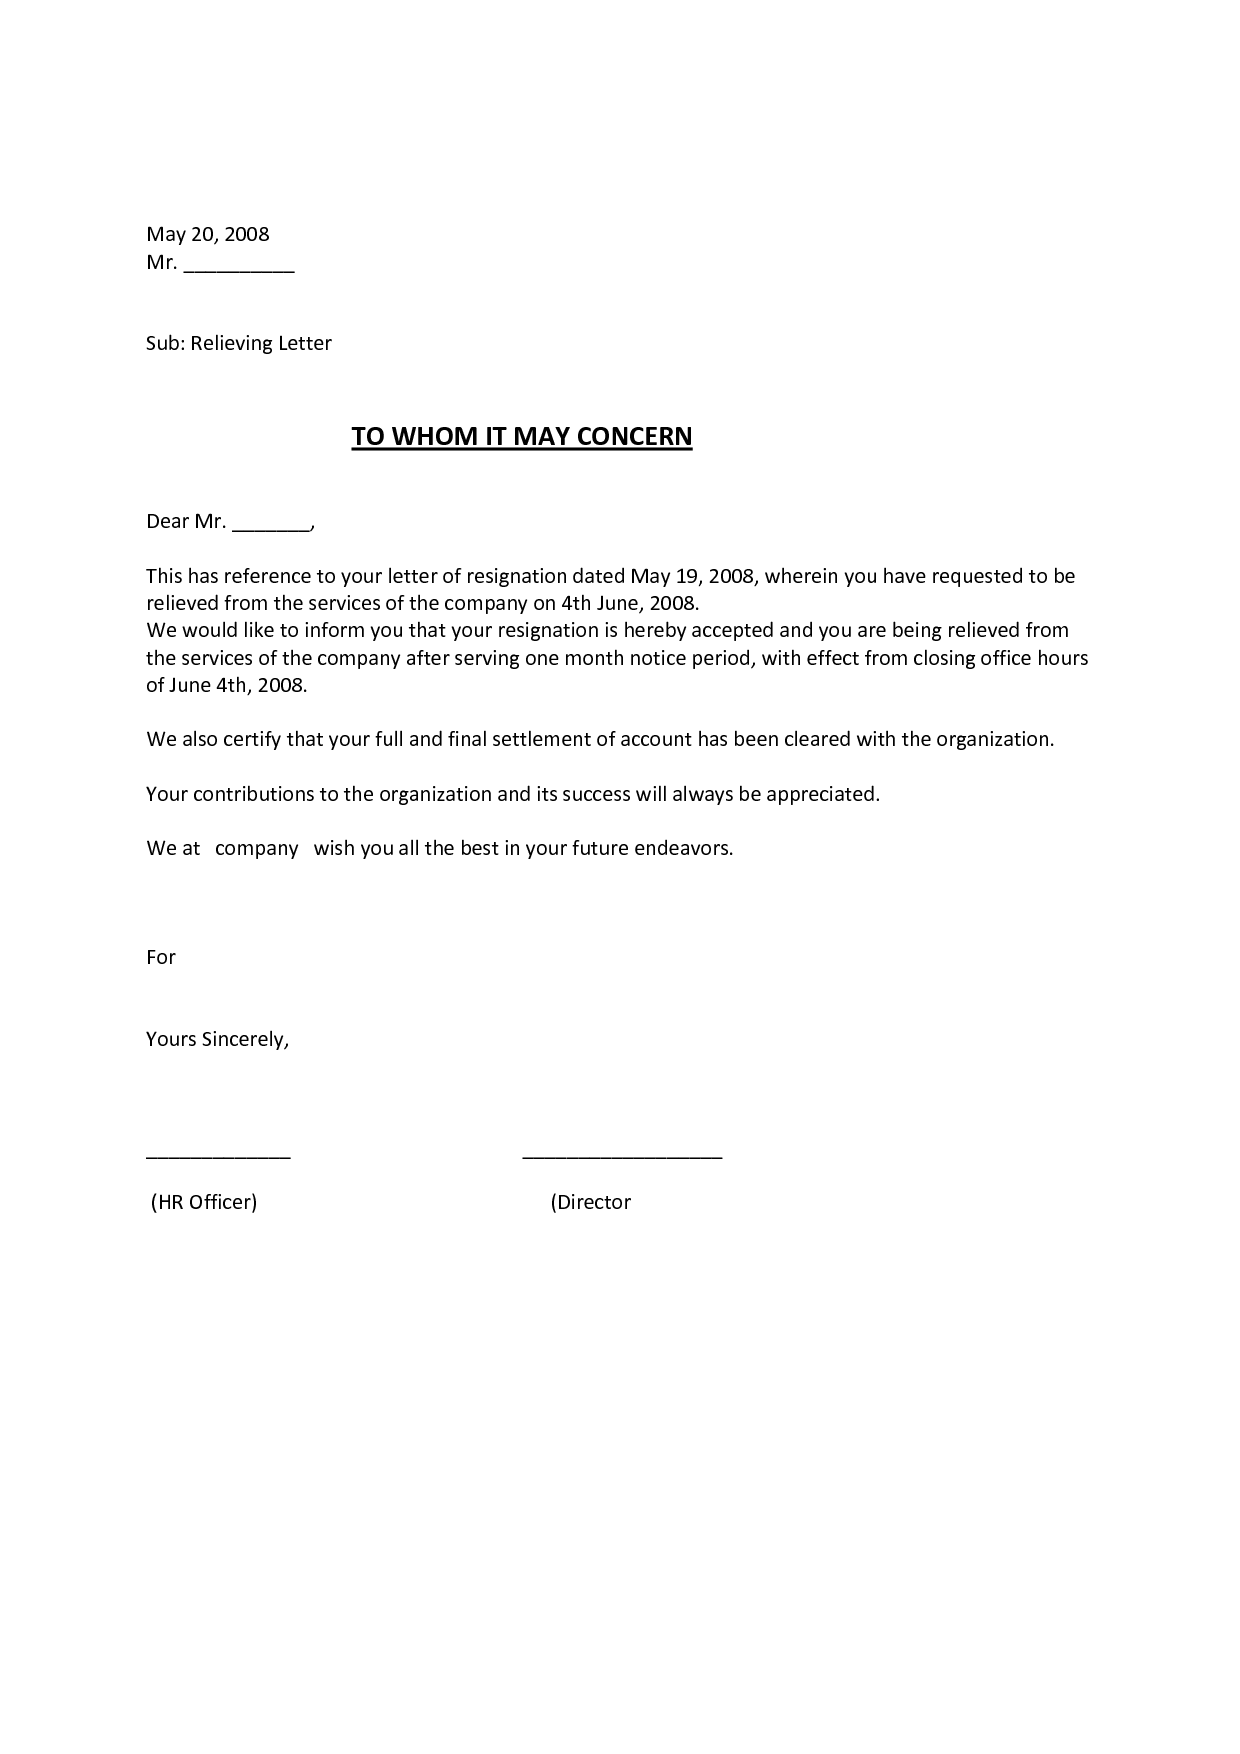 relieving letter format for employee free download hr letter